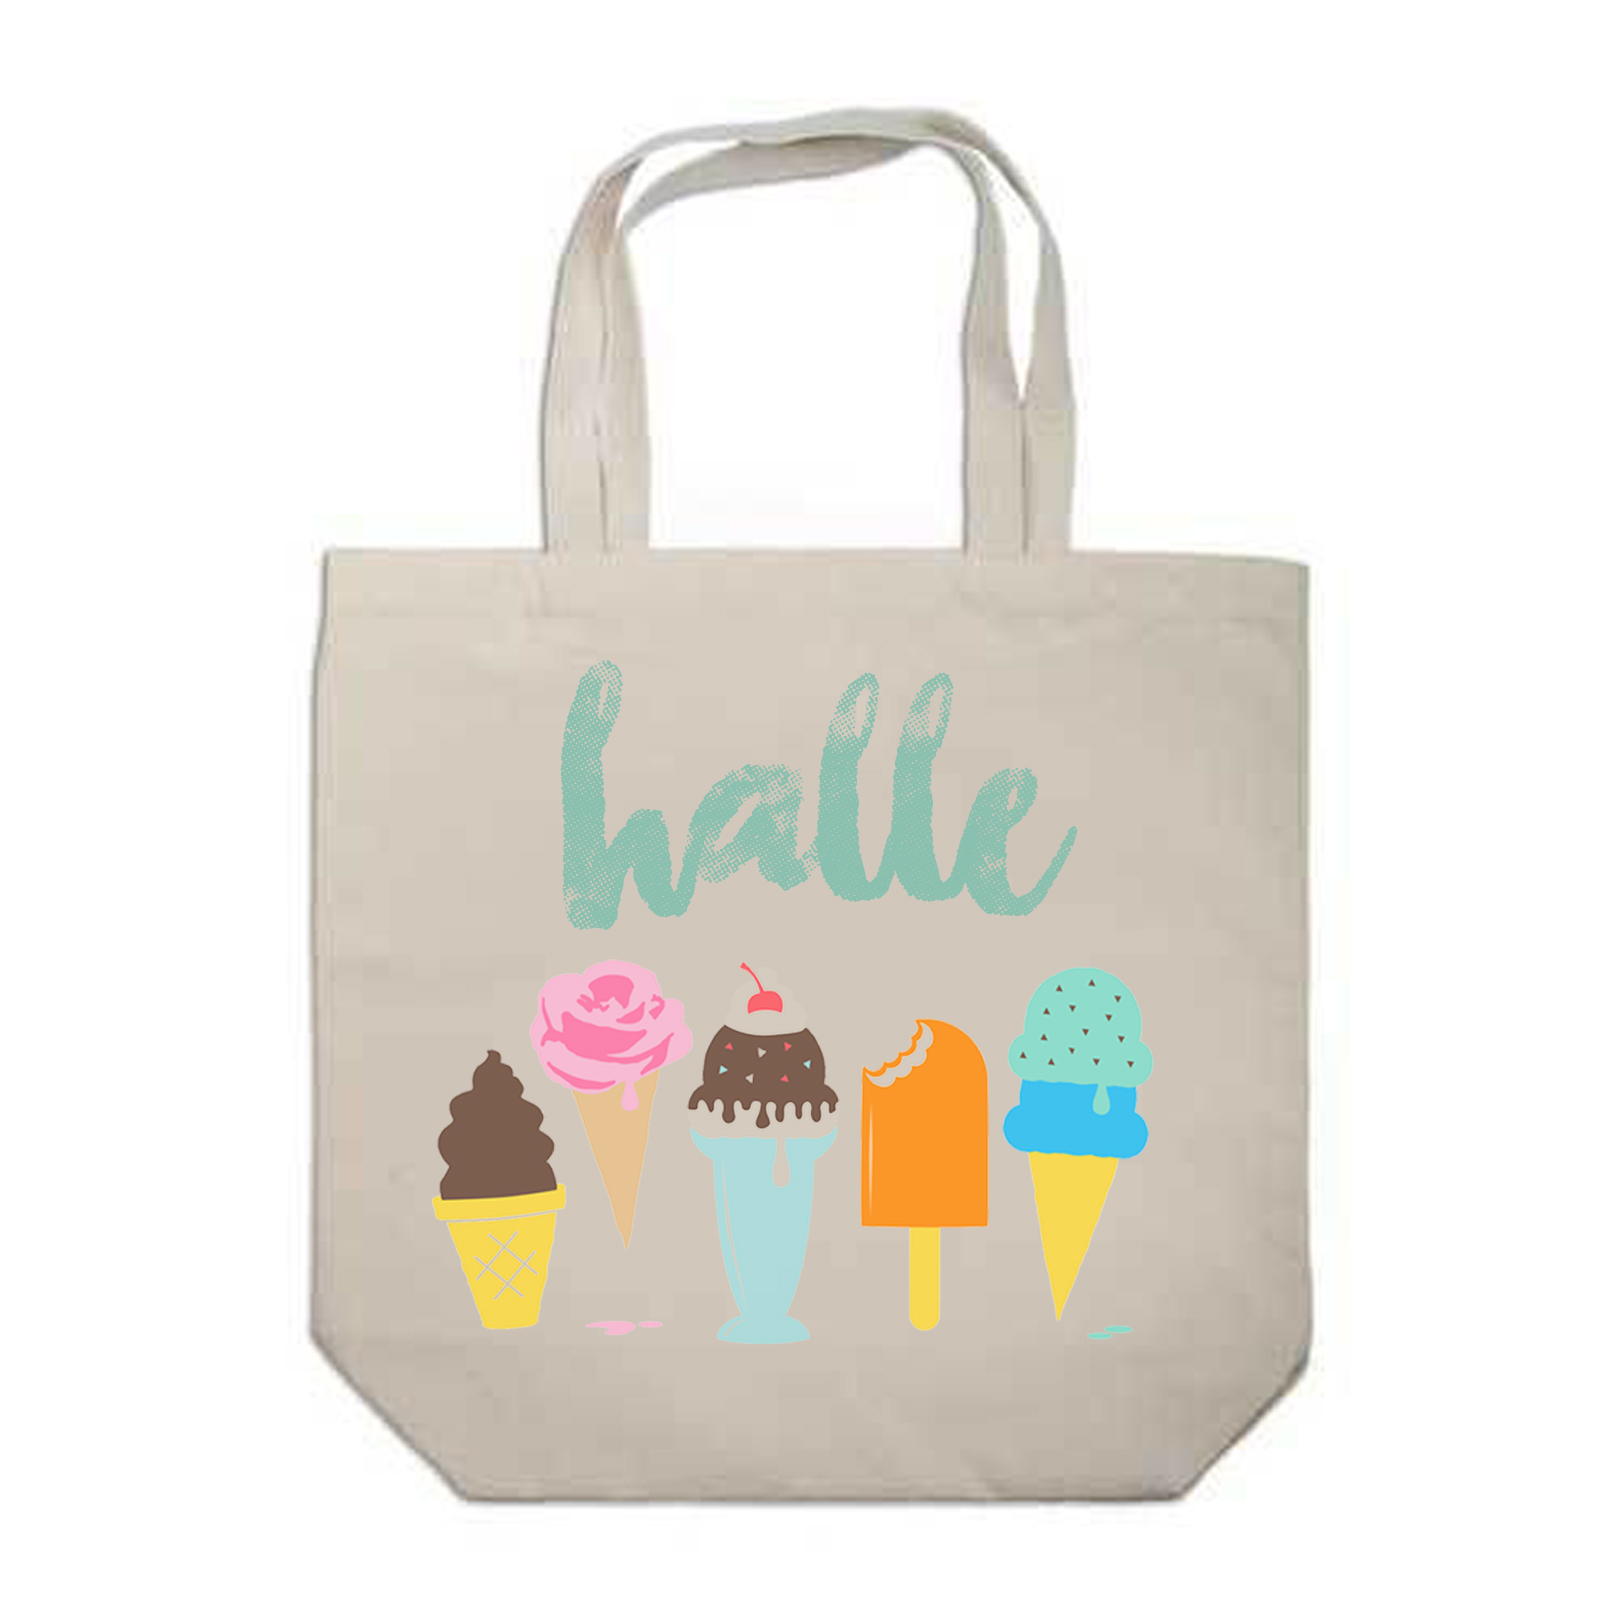 Custom Tote printed live at events